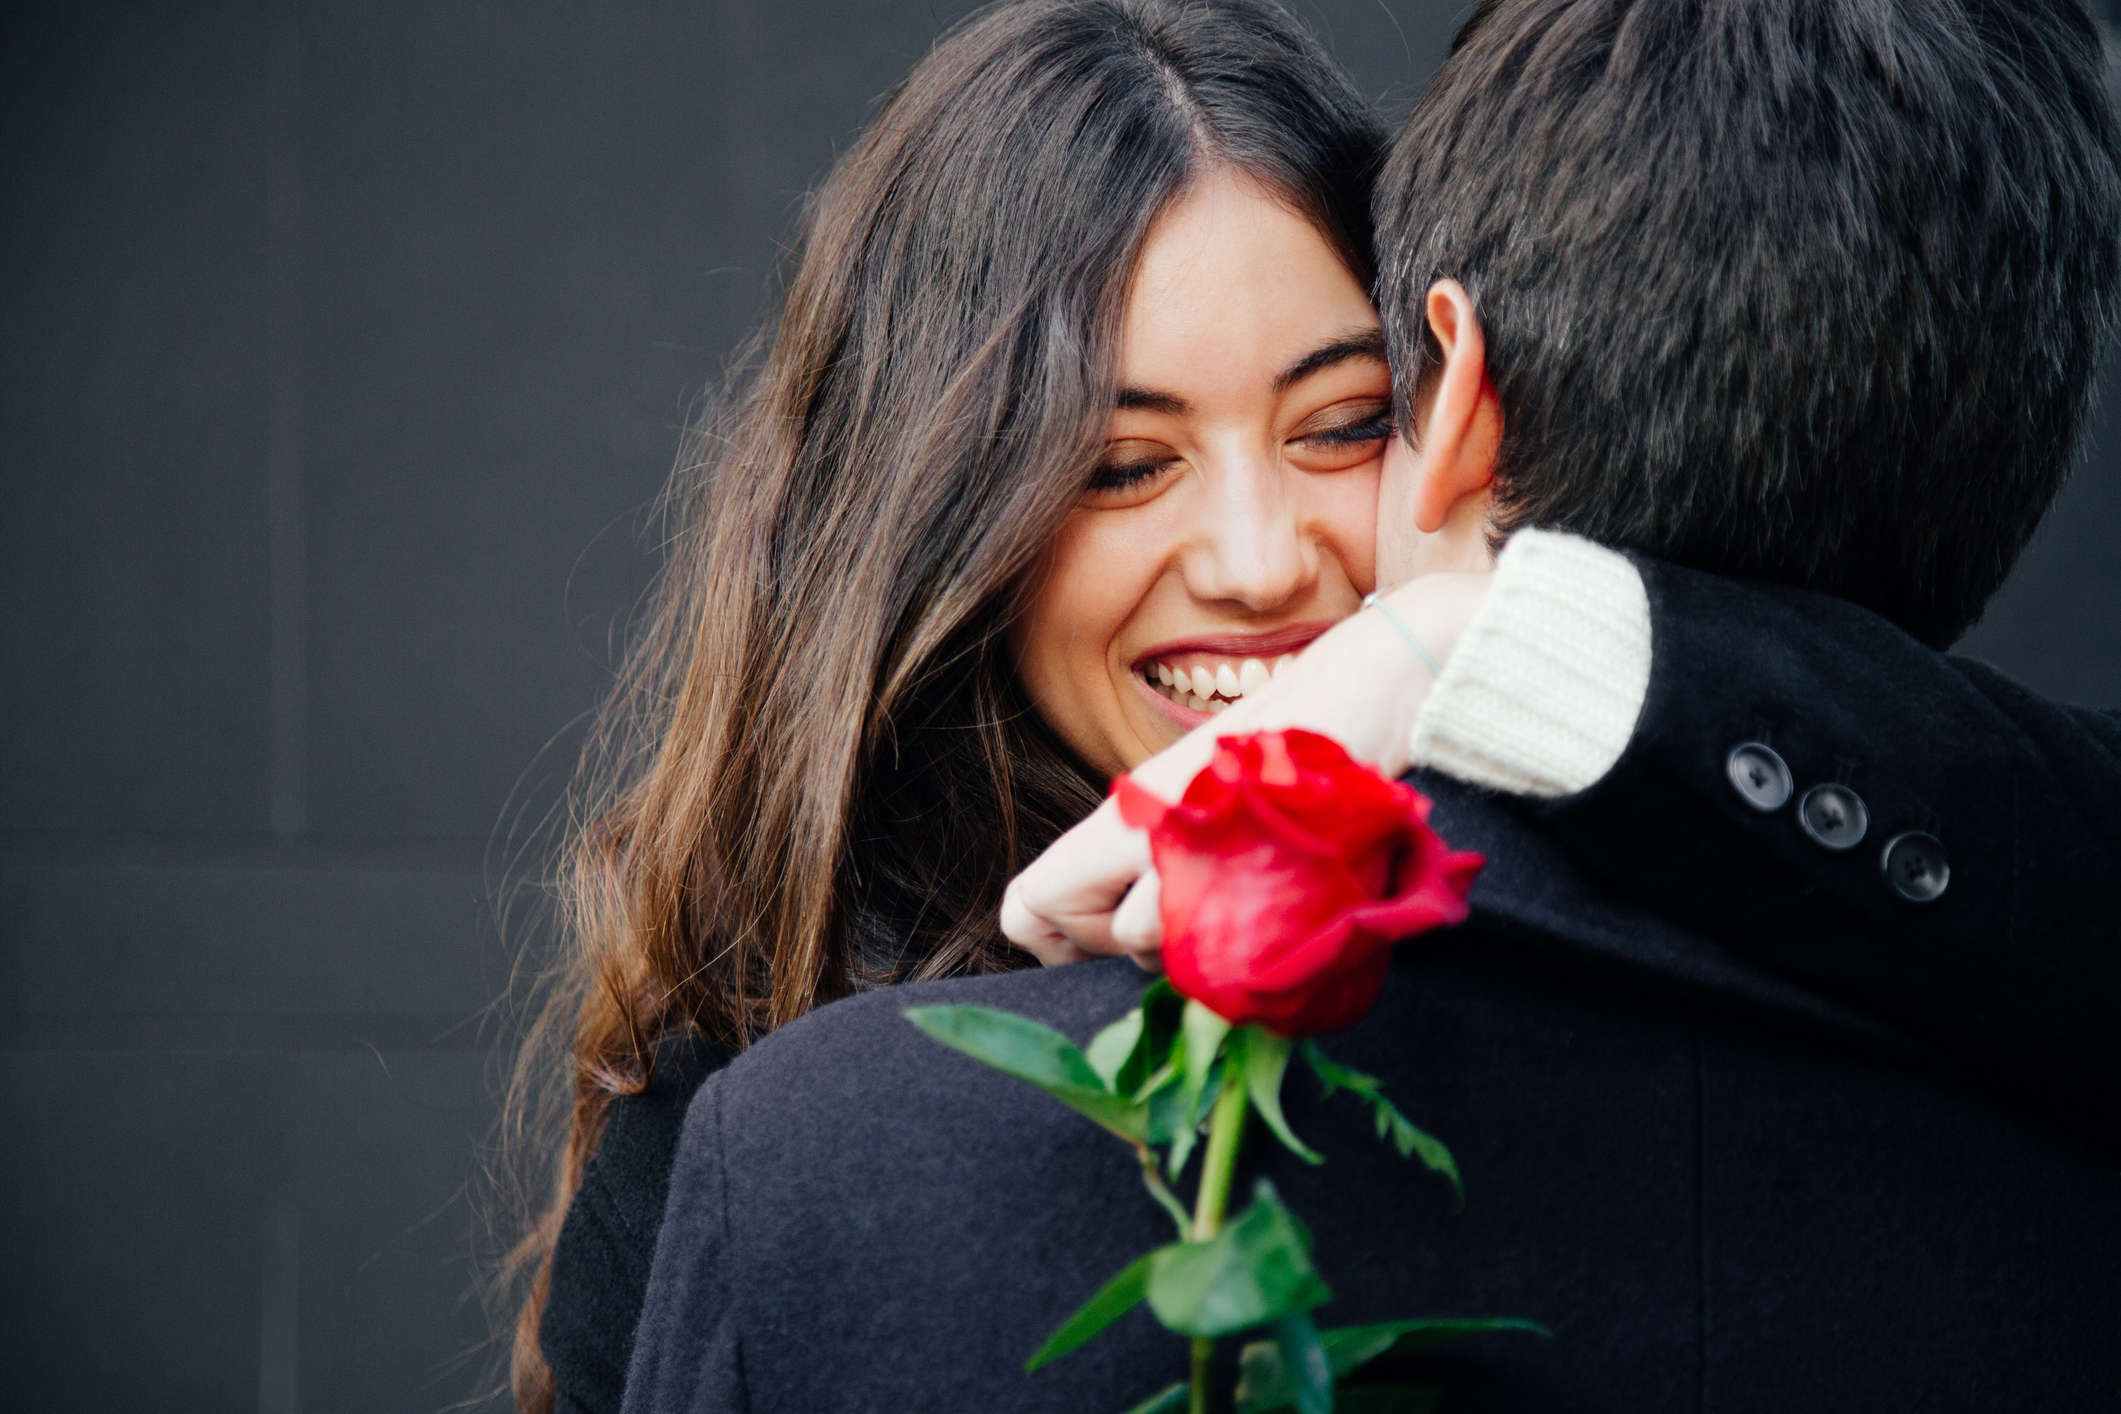 When it came to expressing love, participants also differed on what they thought was a more romantic gesture.